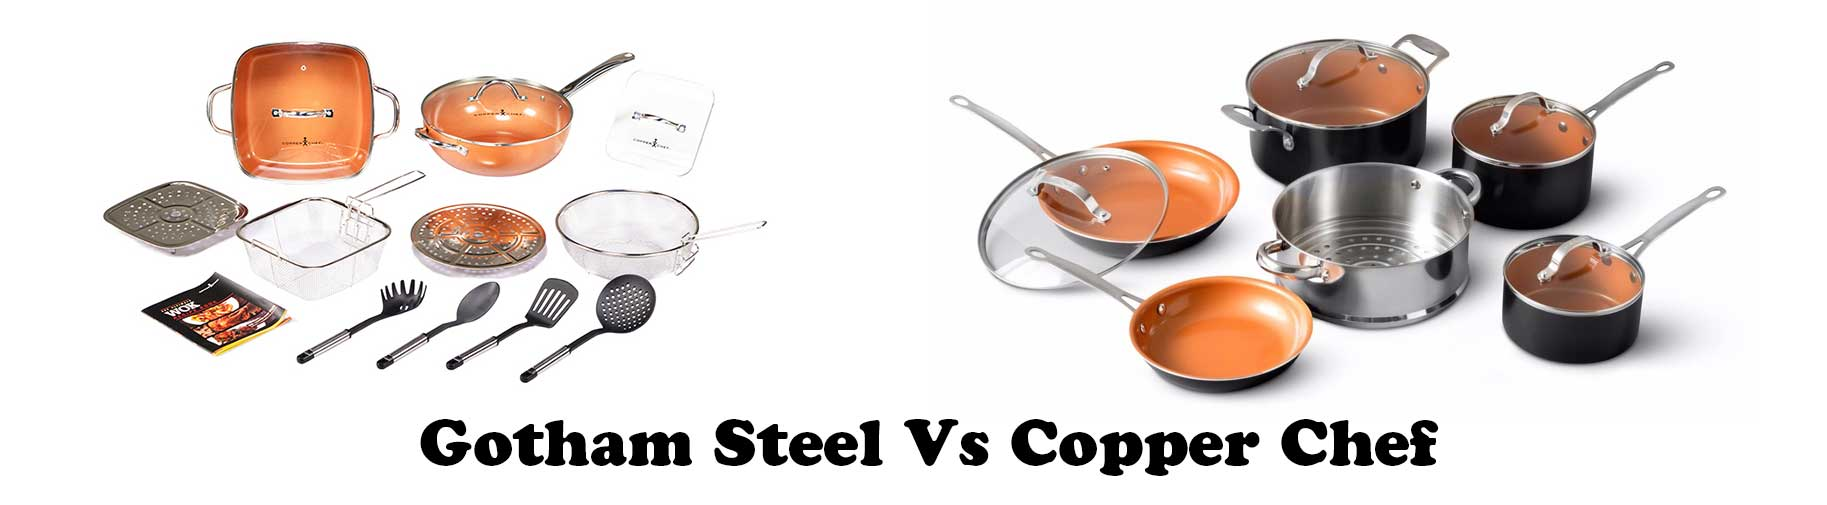 Gotham Steel Vs Copper Chef